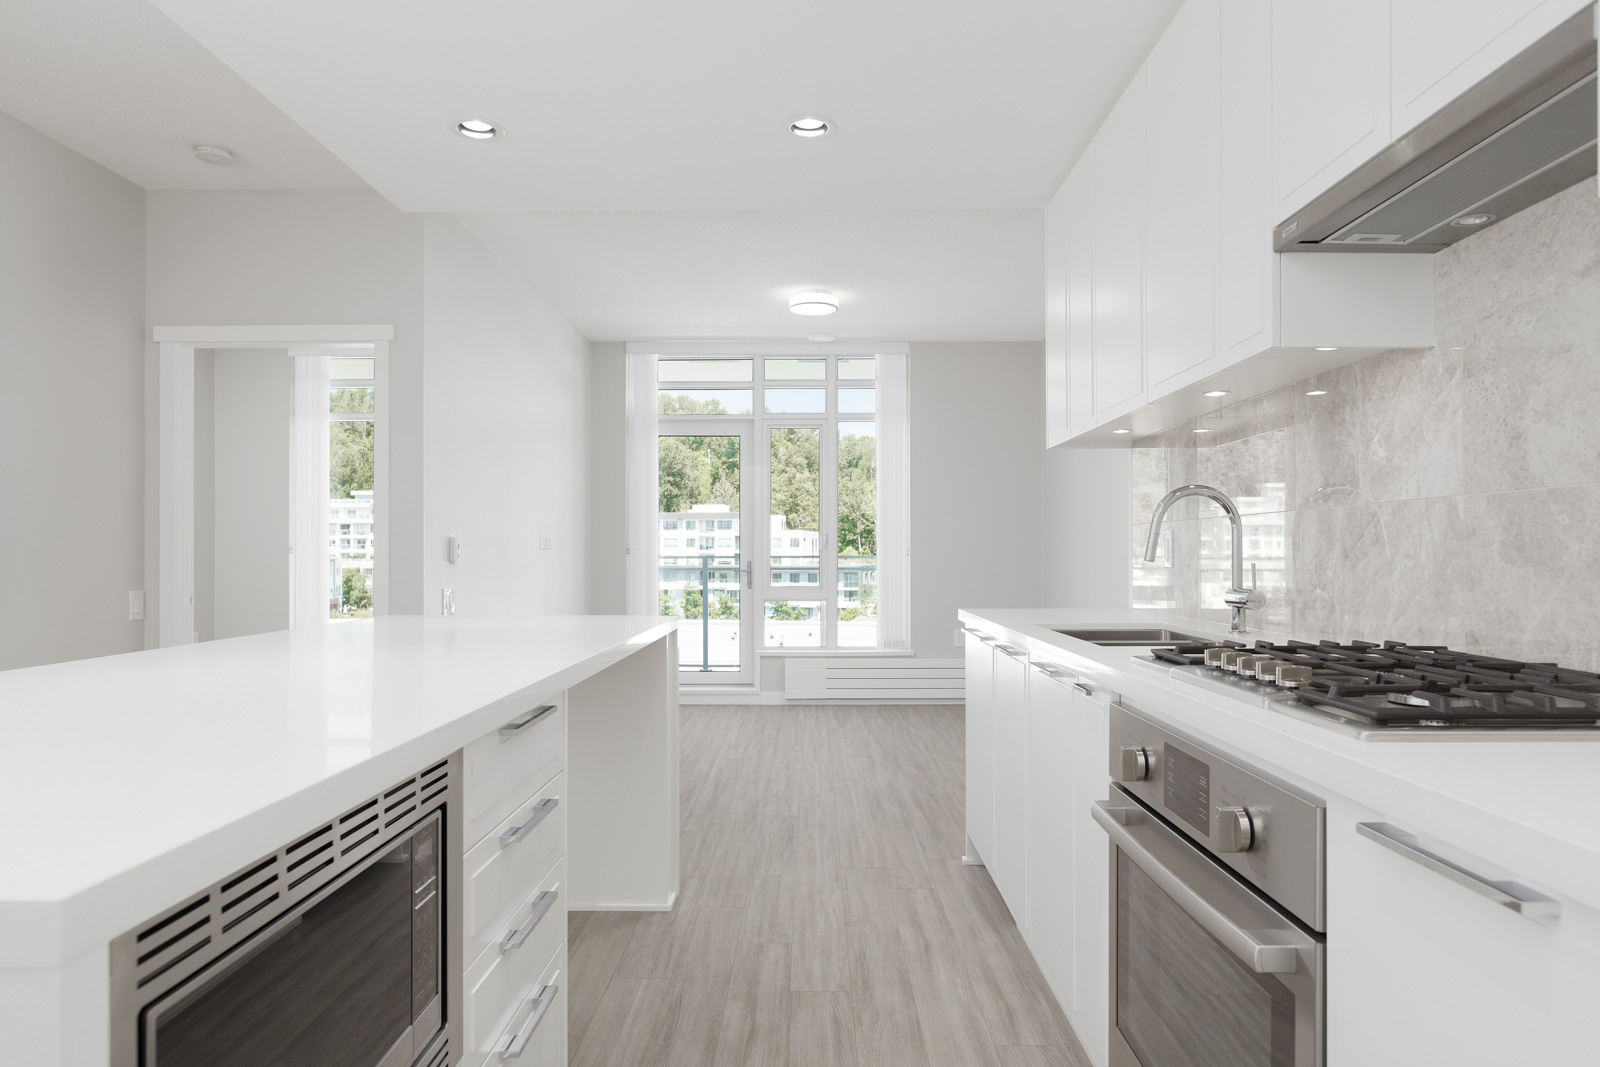 open concept layout that provides flow from the kitchen to the living area